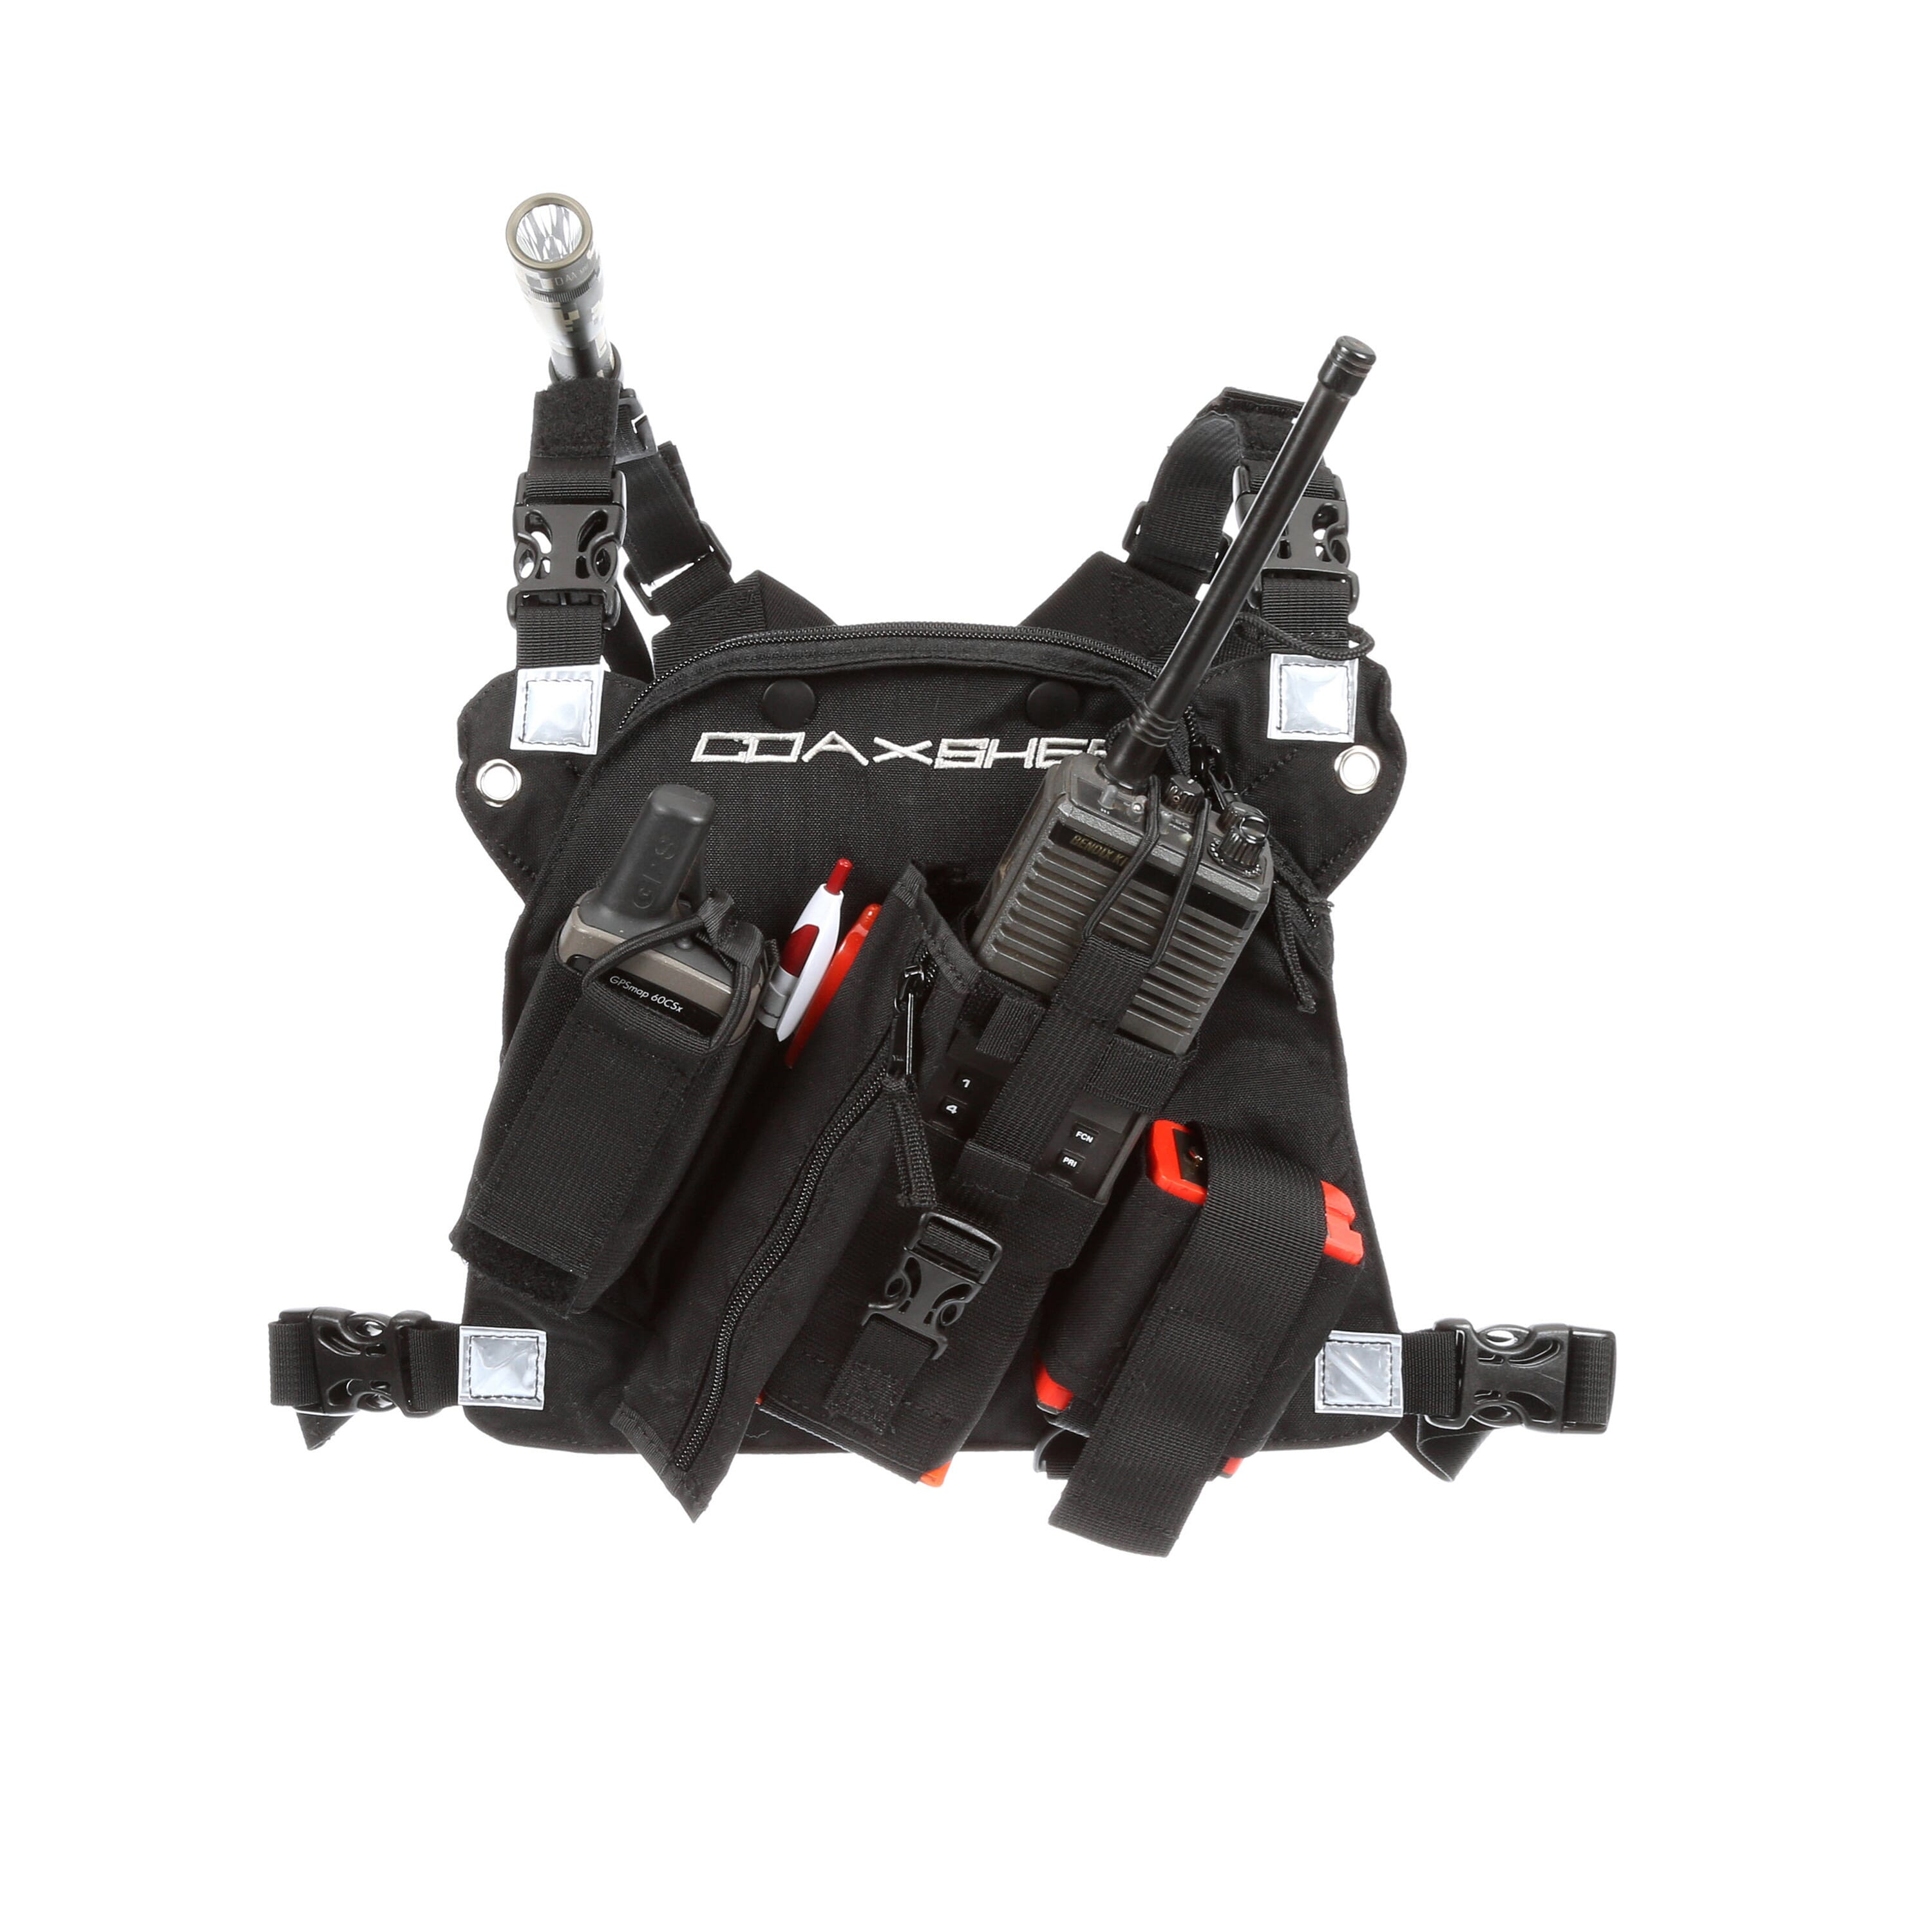 Radio Chest Harness Coaxsher Rcp1 Pro. Leftright Spin Updown Angle. Wiring. Leather Harness Radio Holster At Scoala.co